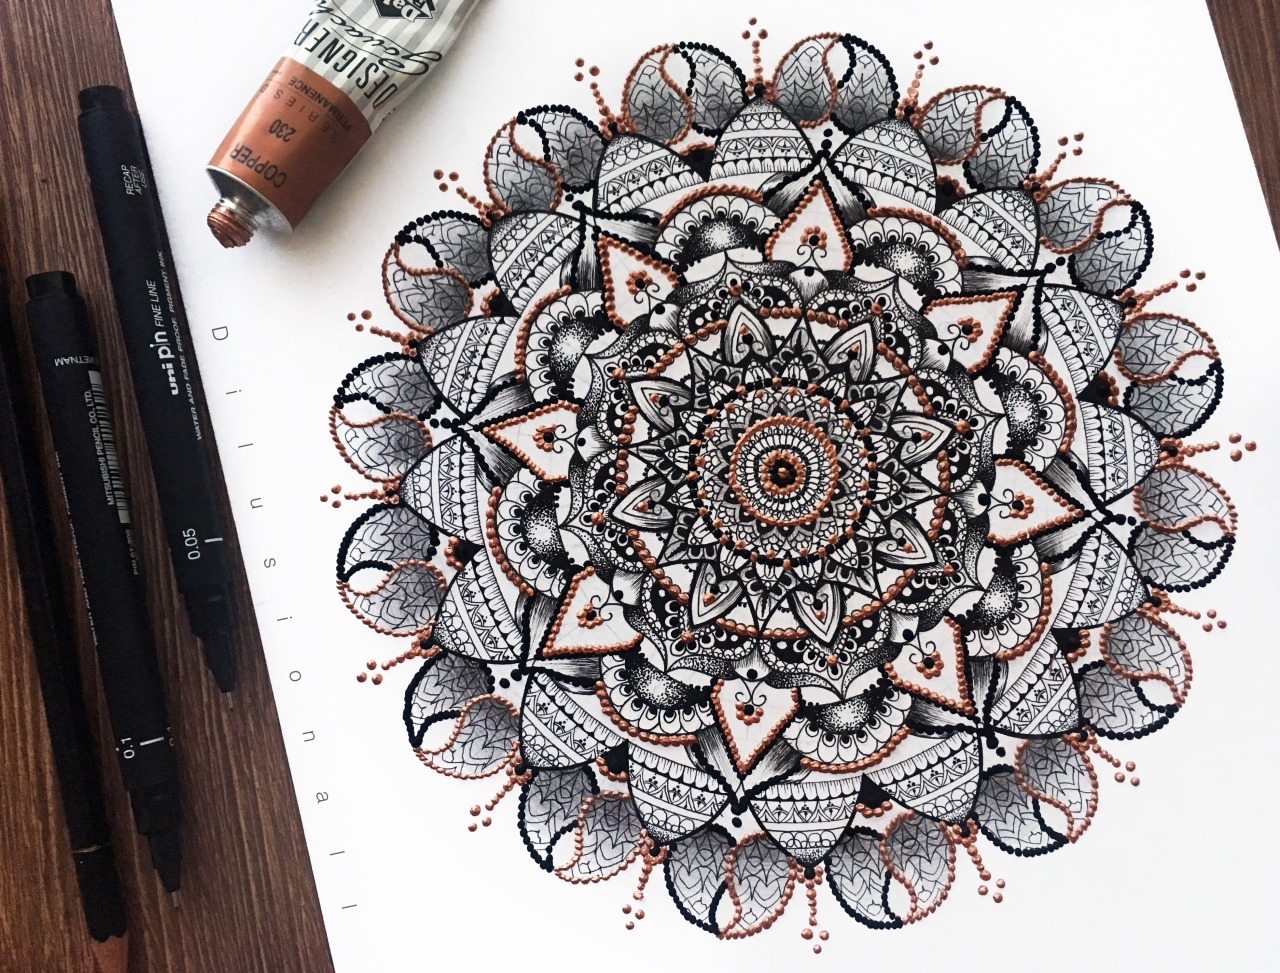 11-Mandala-Dilrani-Kauris-Symmetry-and-Style-in-Mandala-and-Mehndi-Drawings-www-designstack-co